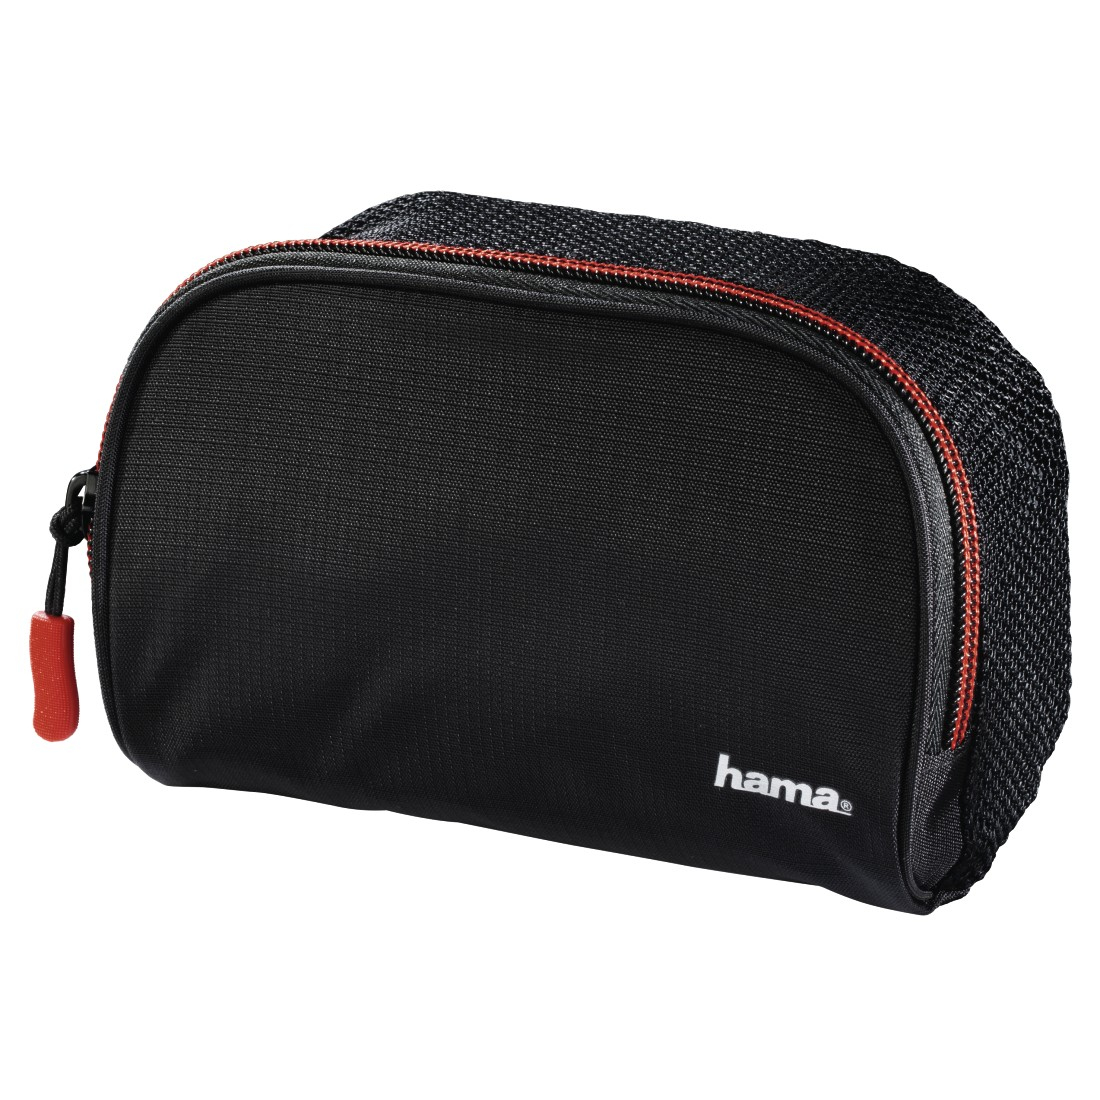 Hama Fancy M Camera Accessory Pouch black